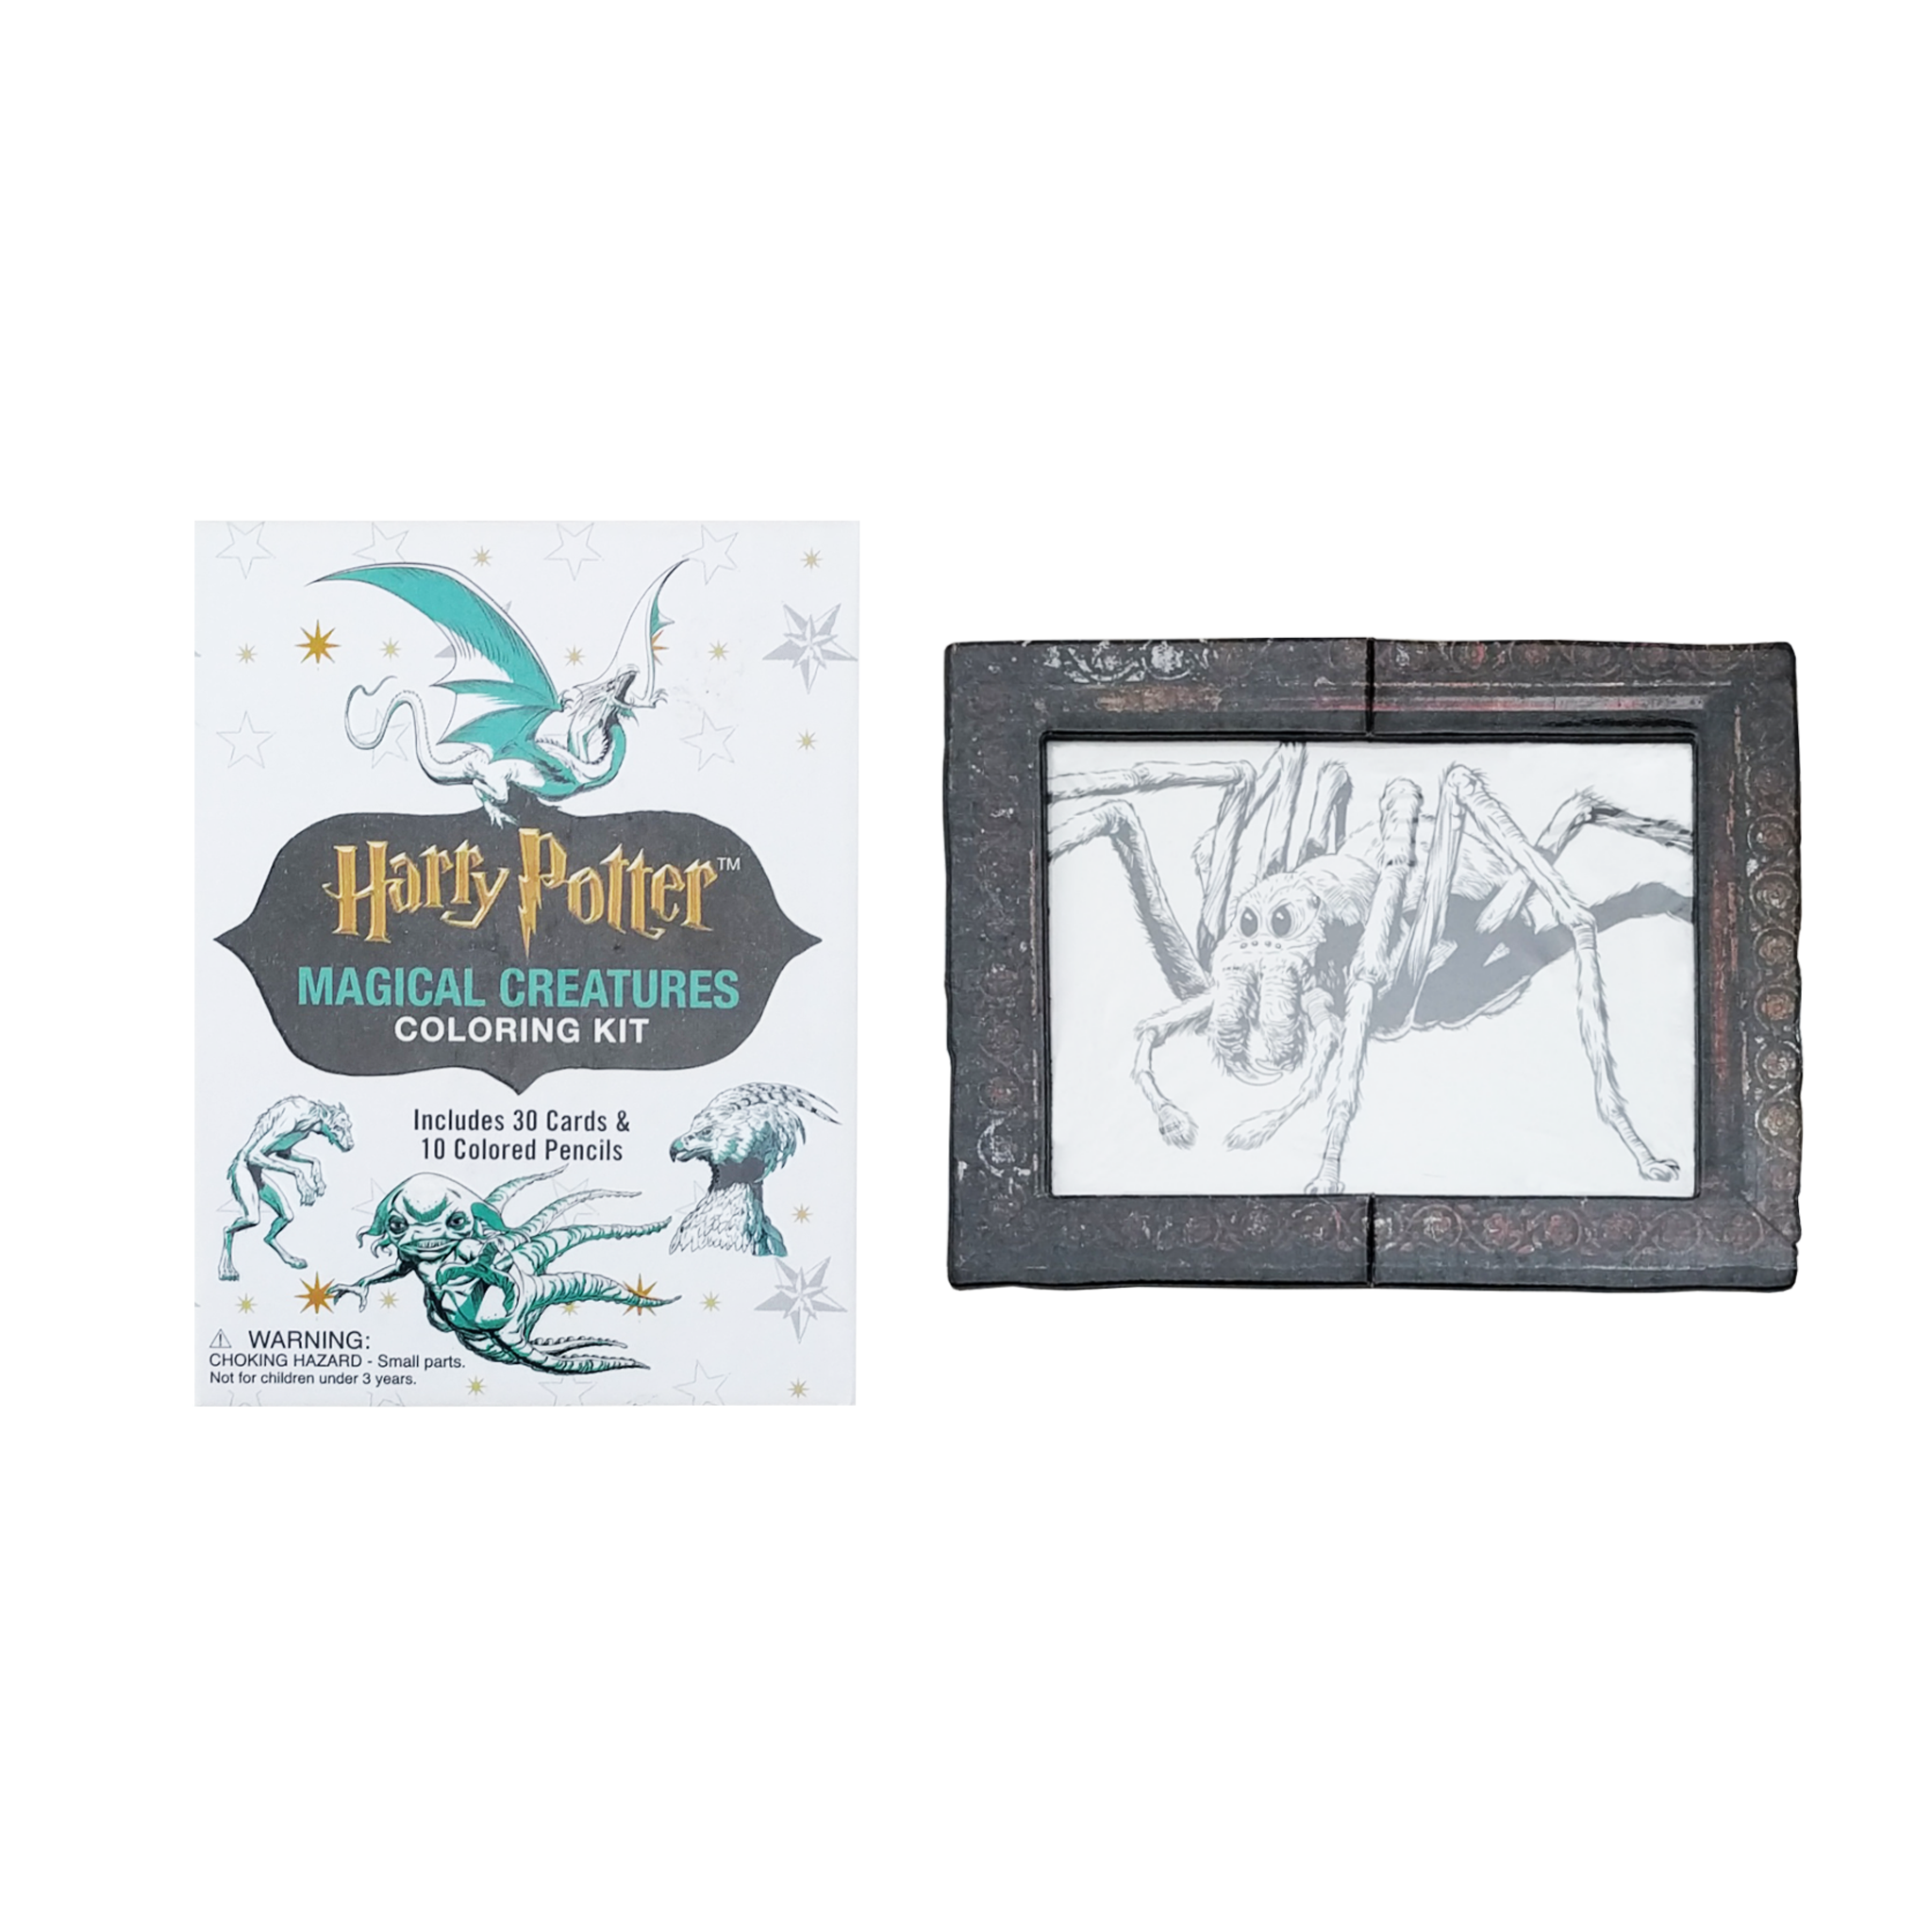 Harry Potter Magical Creatures Colouring Kit Accessory With Book